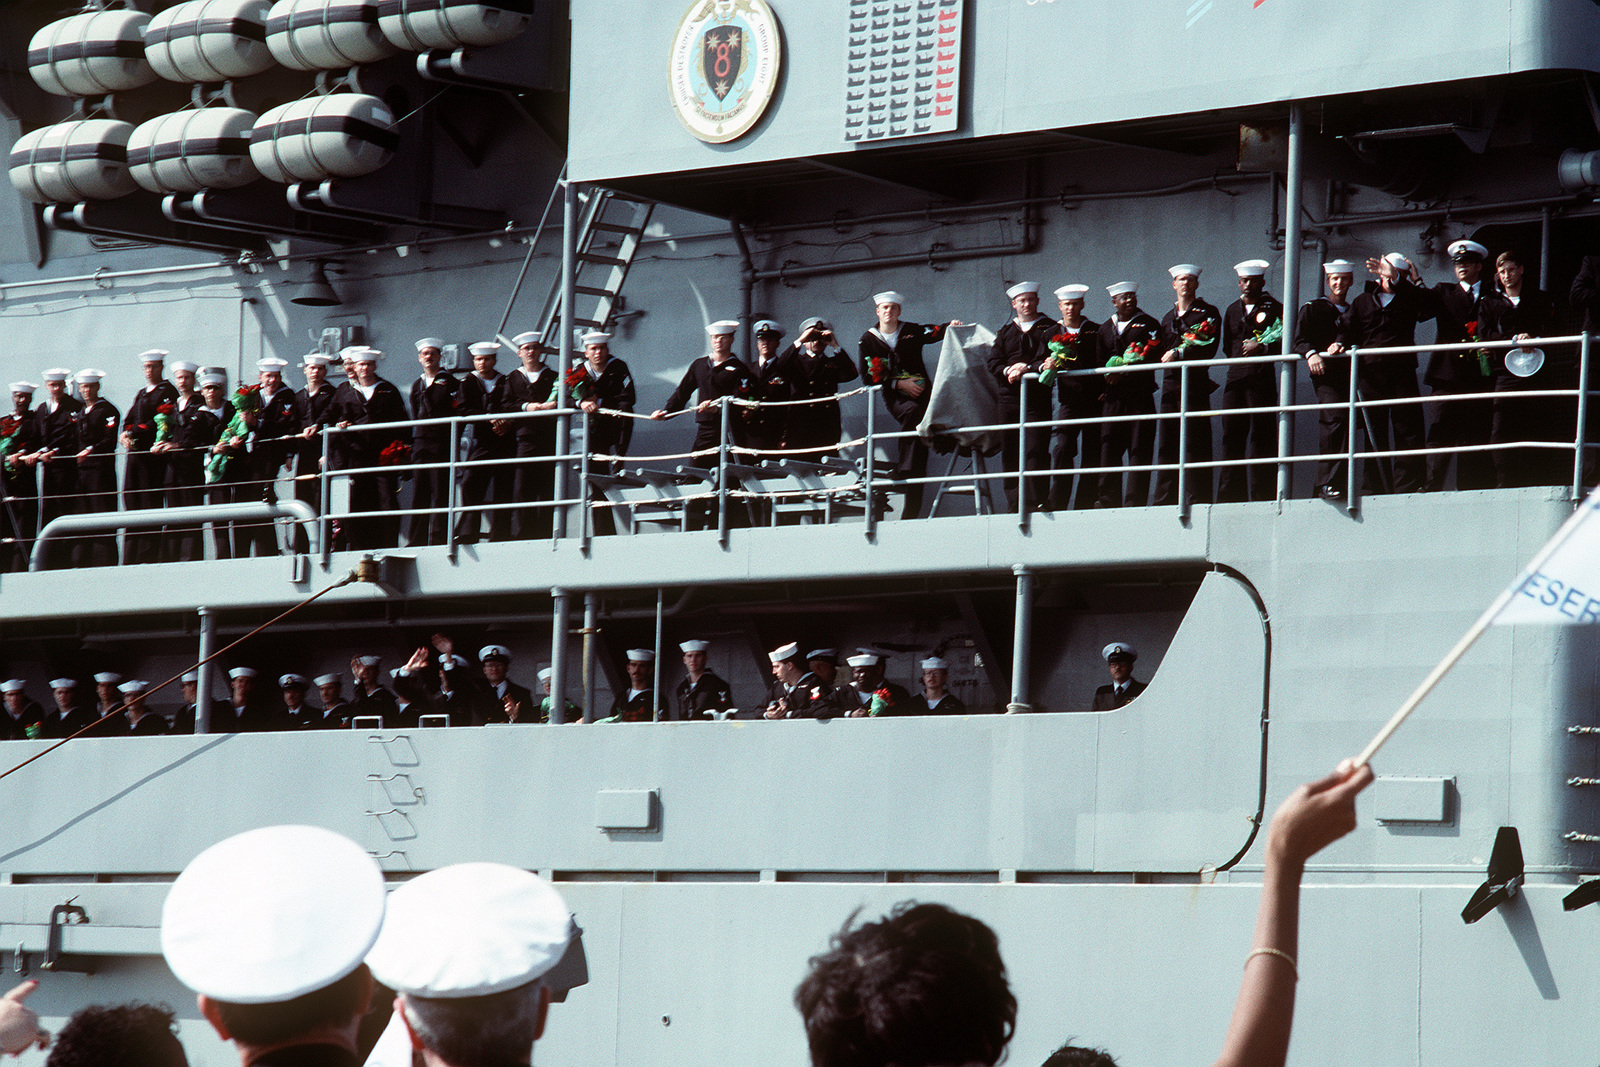 Crew members stand at the railing aboard the nuclear-powered guided missile cruiser USS MISSISSIPPI (CGN-40) as they look for their loved ones in the crowd on the pier. Ships of the aircraft carrier USS JOHN F. KENNEDY (CV-67) battle group are returning to Norfolk following deployment in the Persian Gulf area during Operation Desert Storm